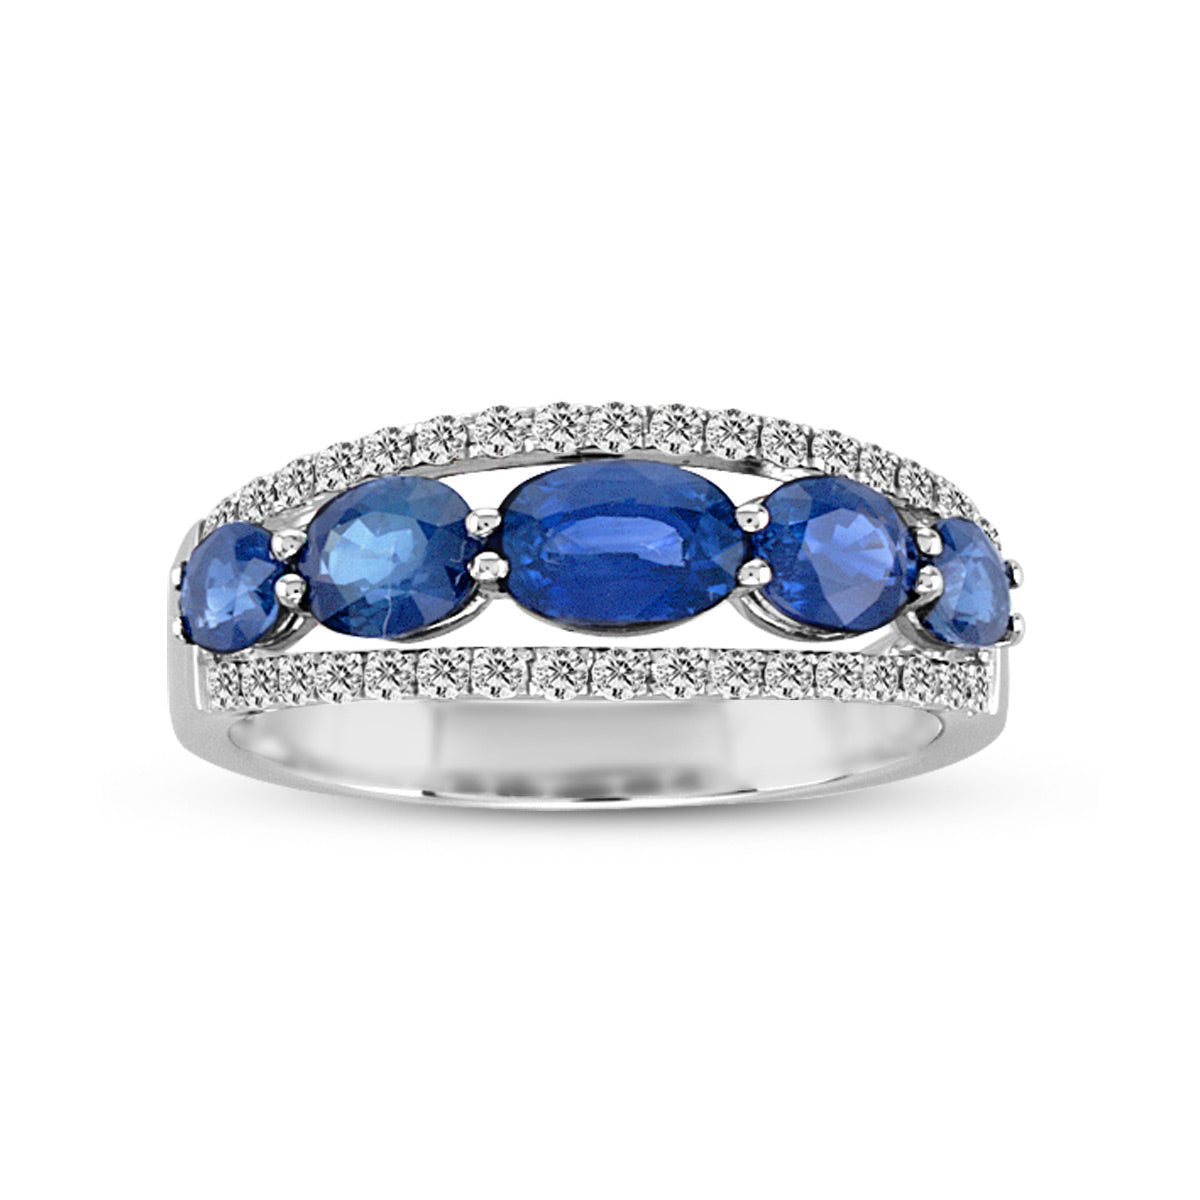 Oval Blue Sapphire and Diamond Ring, 18K White Gold